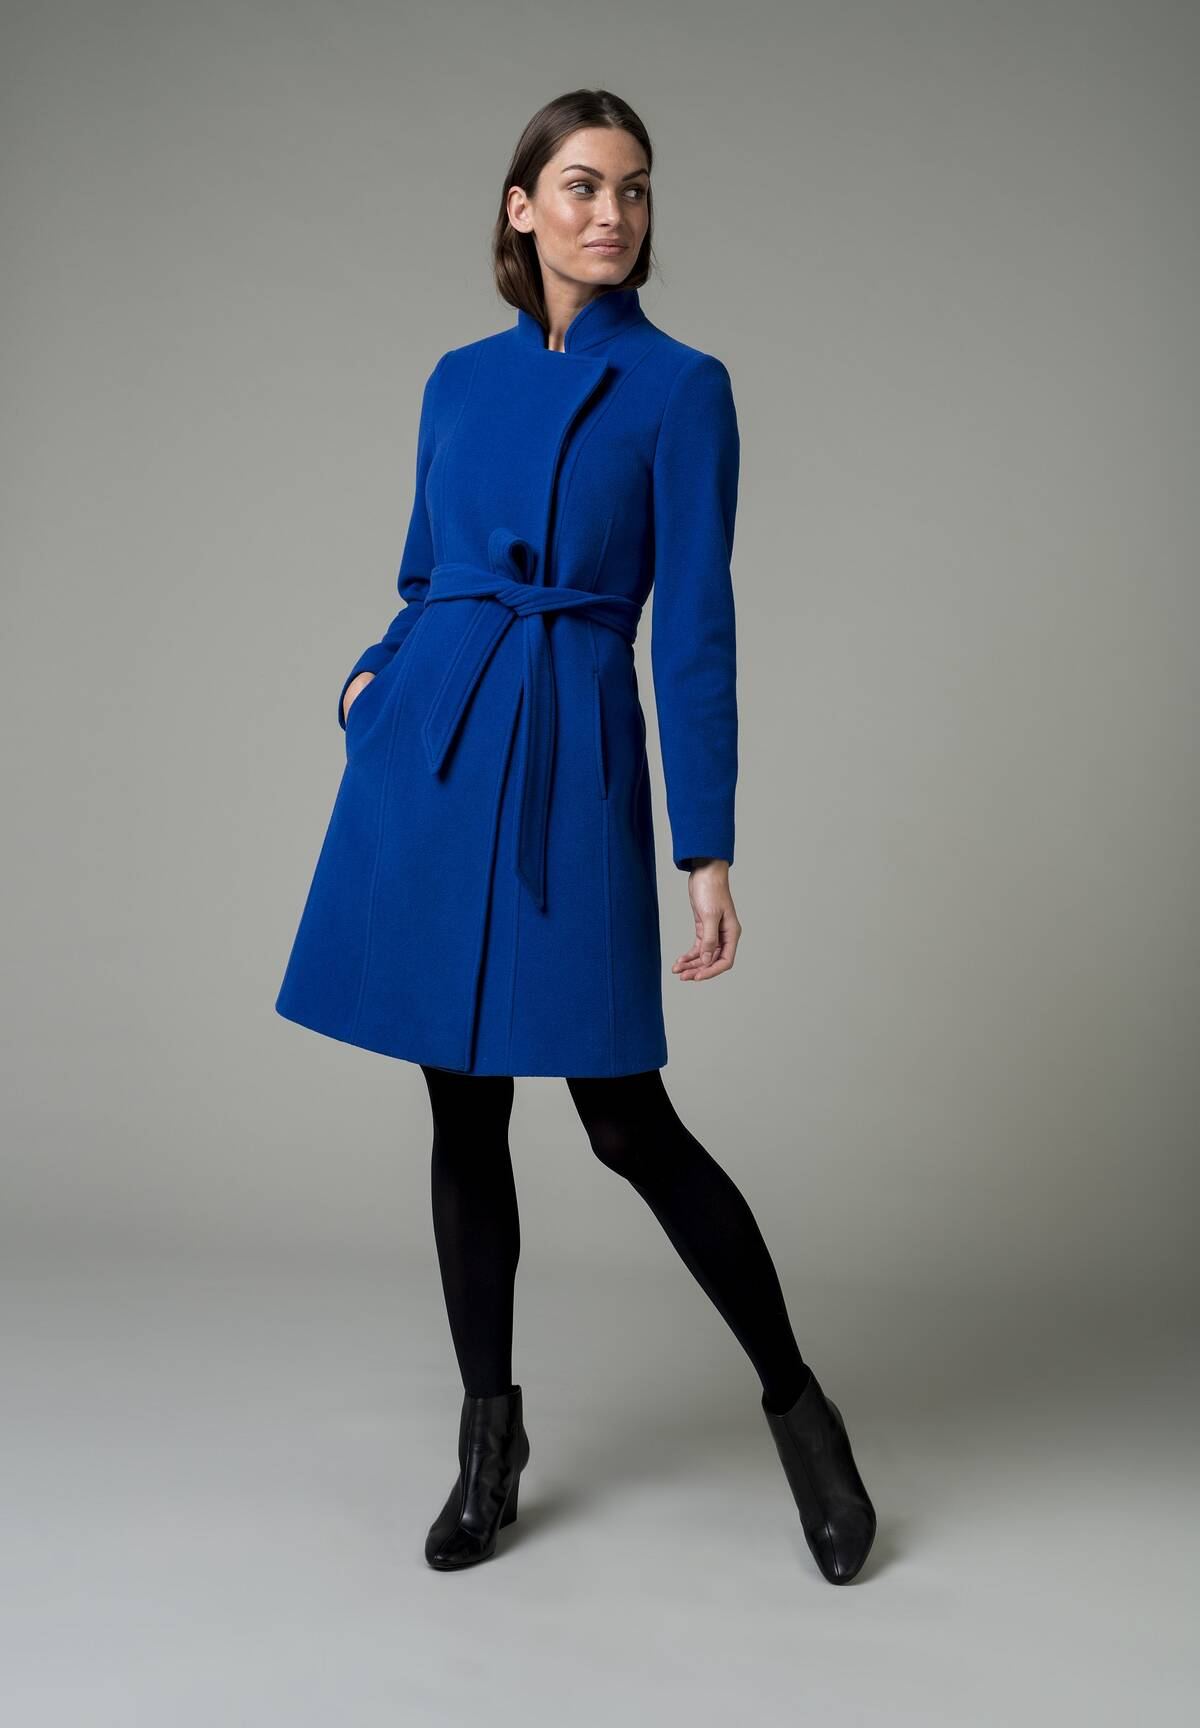 Modischer Mantel mit Bindegürtel / Wool Coat